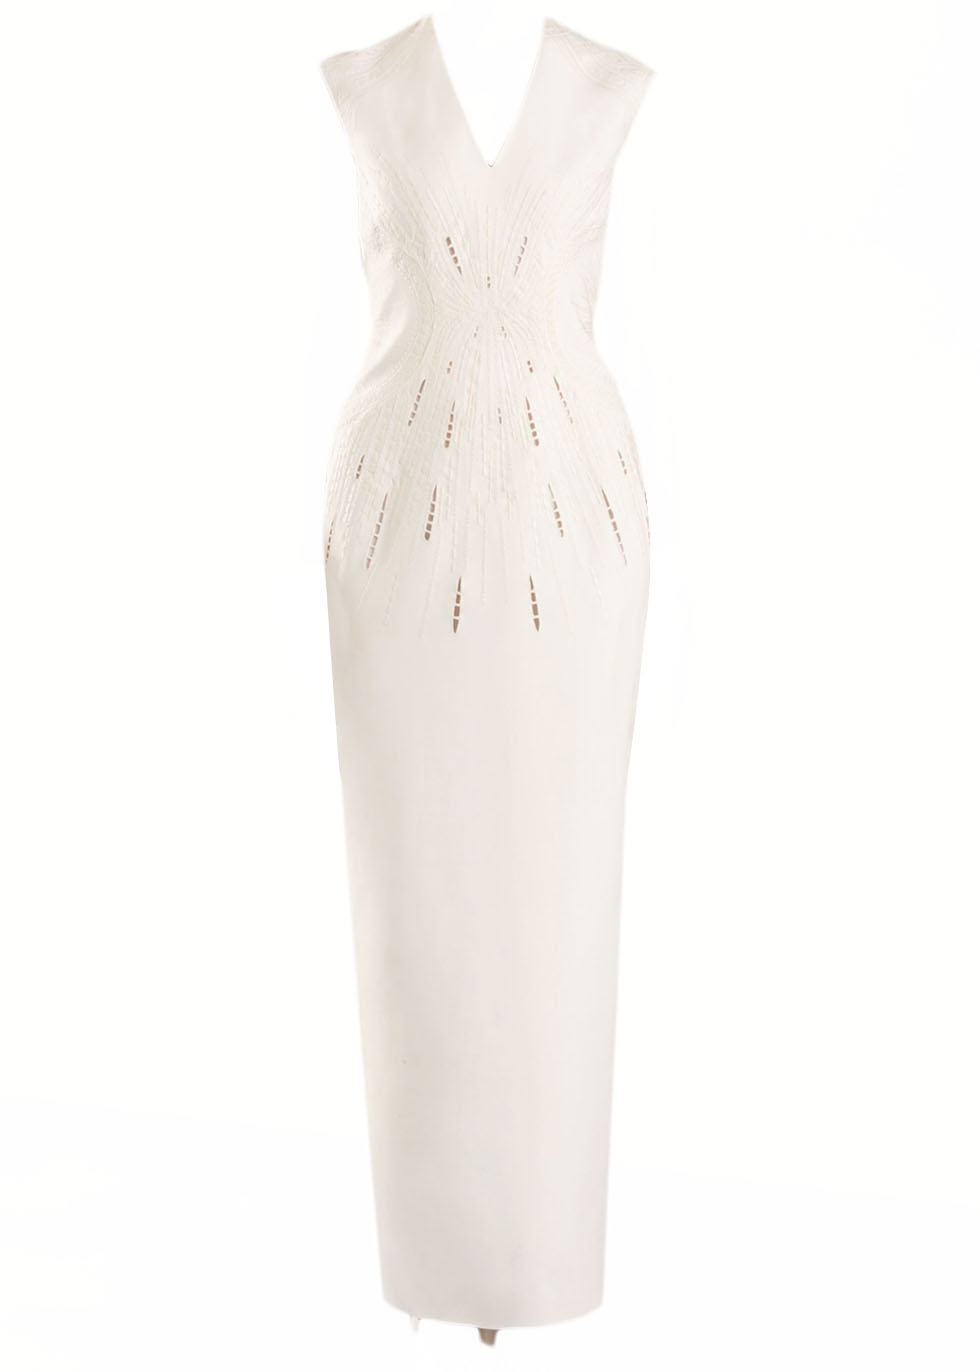 Classic Embroidery long gown-image.jpg